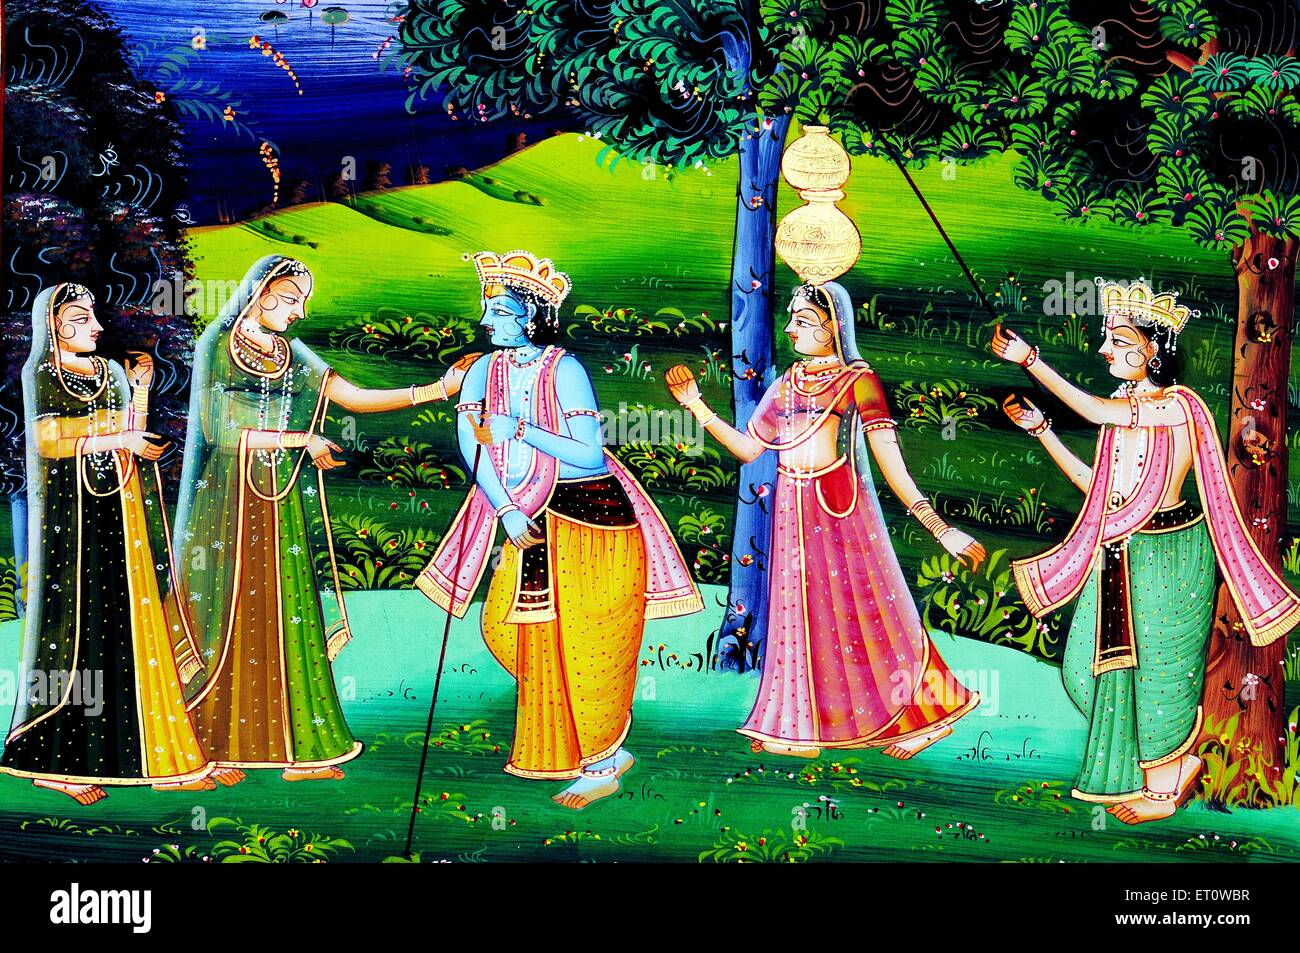 lord krishna and sudama essay Krishna & sudama's friendship is known to all sudama was a poor brahmin man  he didn't even have enough money to feed his children once with tearful.